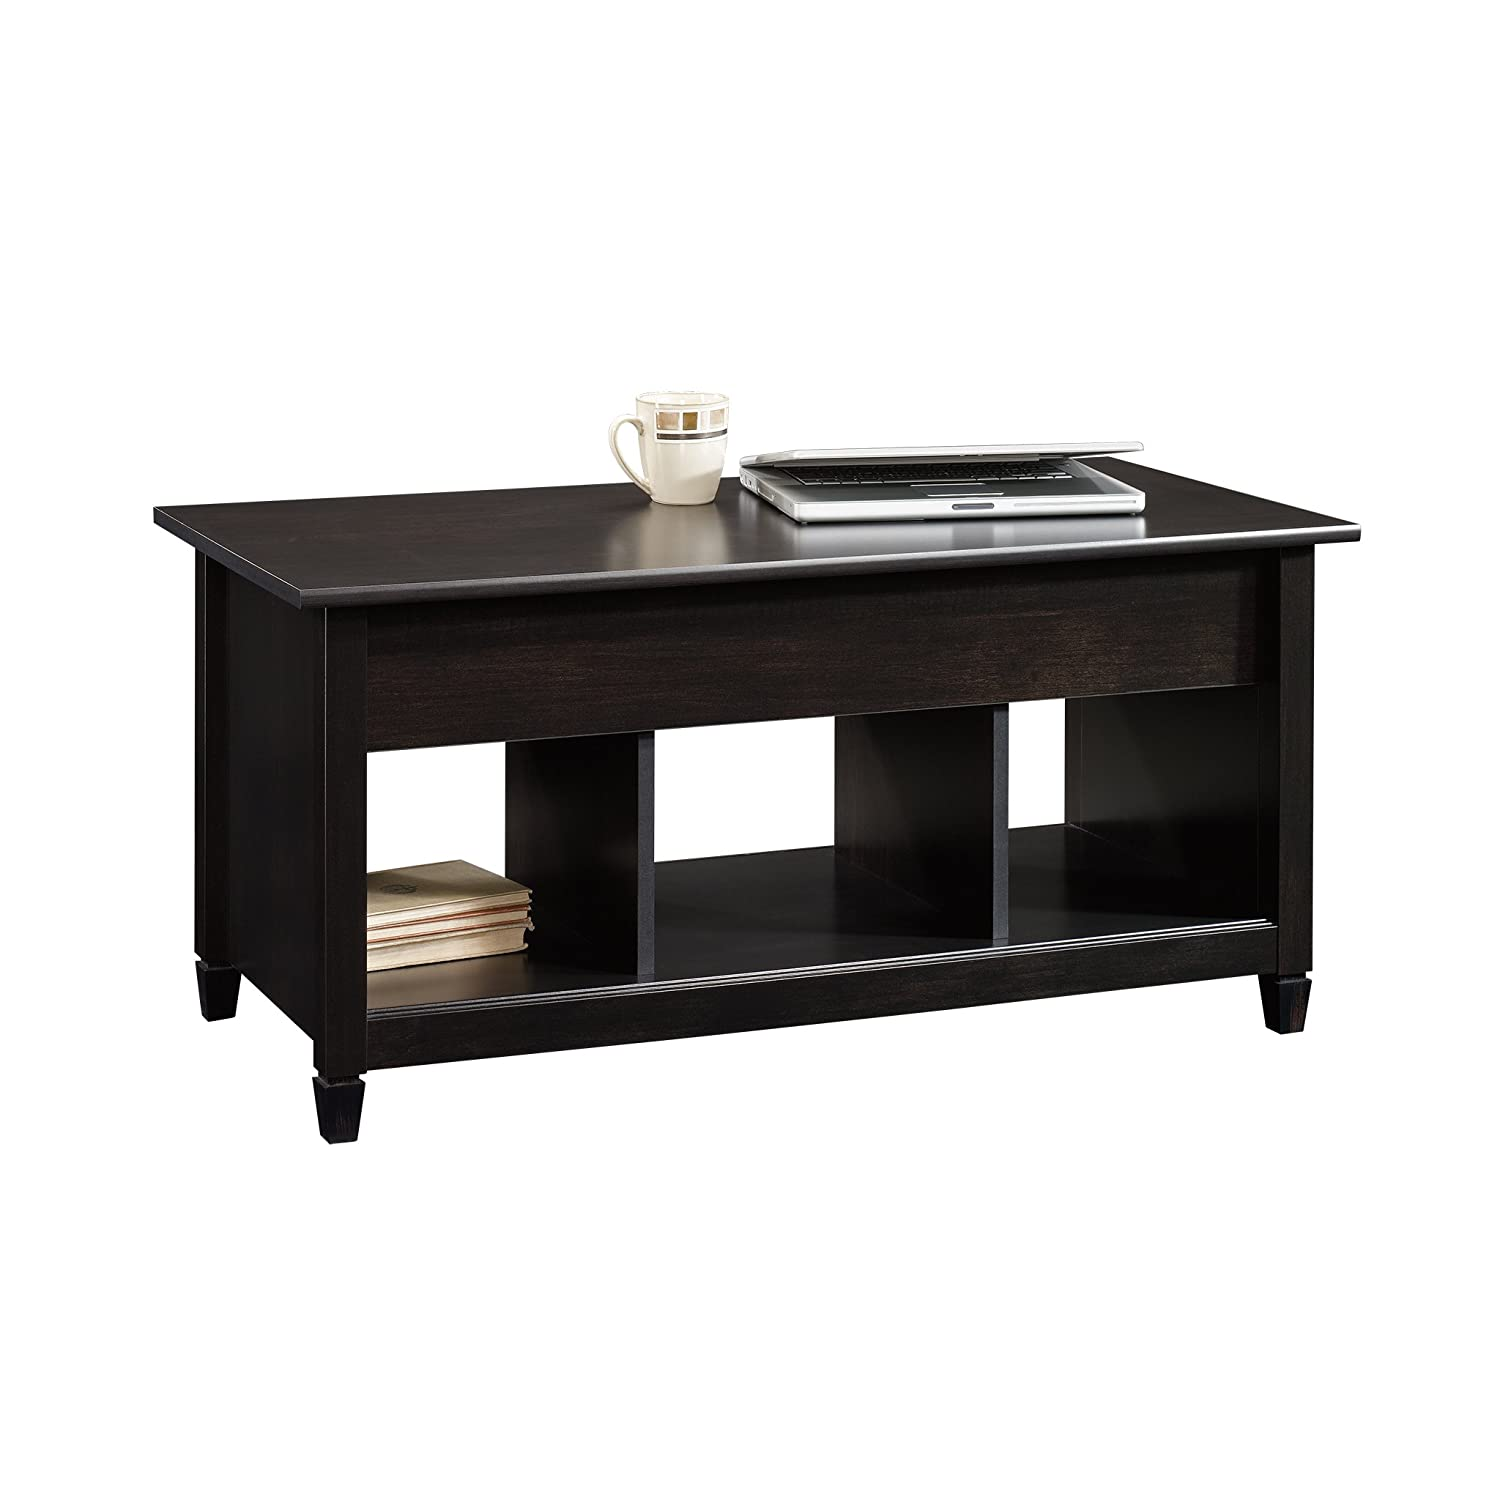 Sauder Kitchen Furniture Amazoncom Sauder Edge Water Lift Top Coffee Table Estate Black